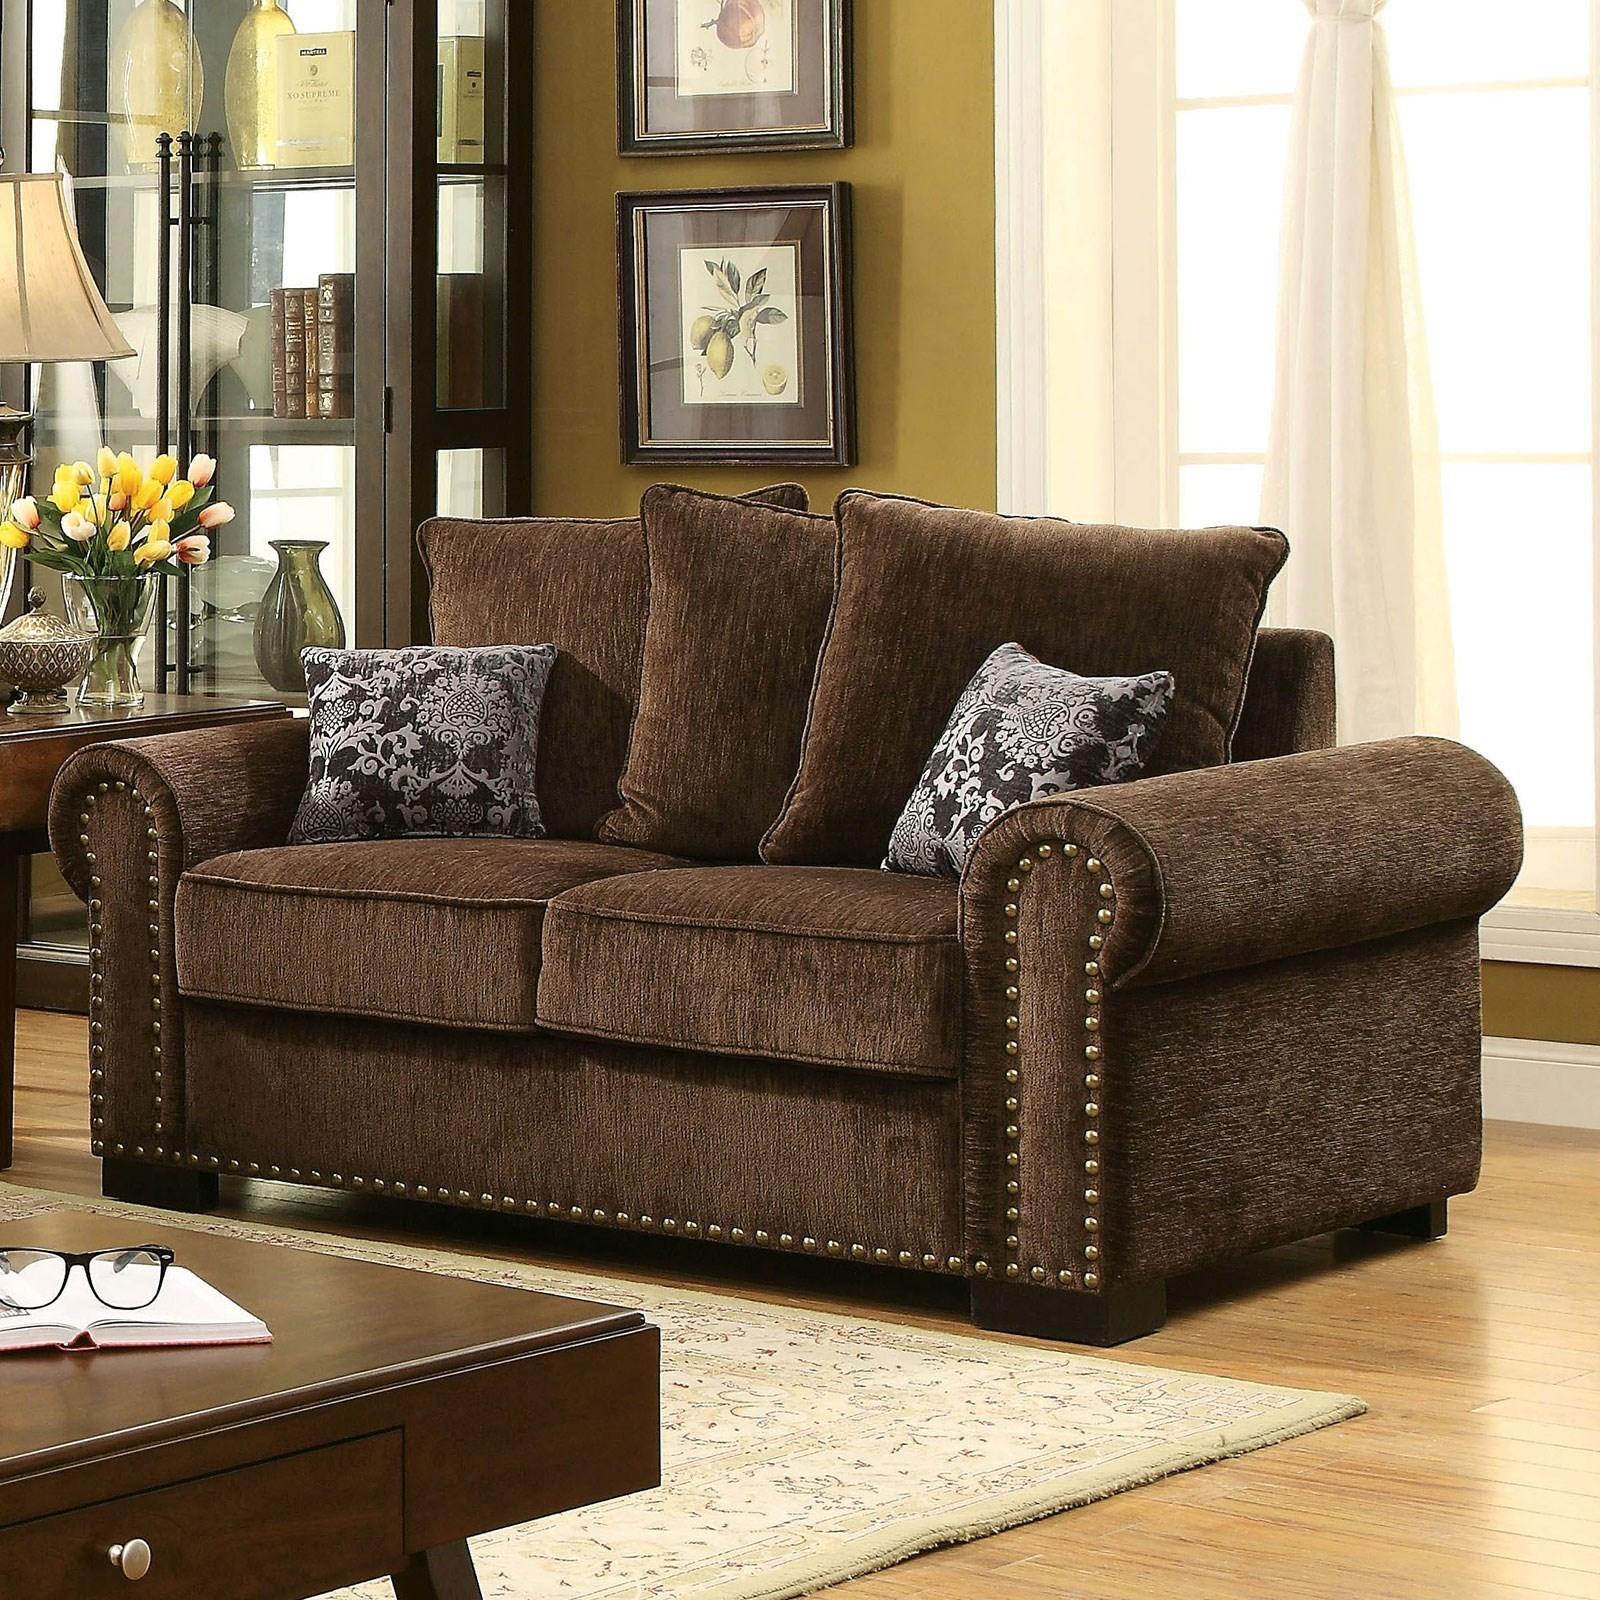 Rydel Loveseat by Furniture of America at Nassau Furniture and Mattress